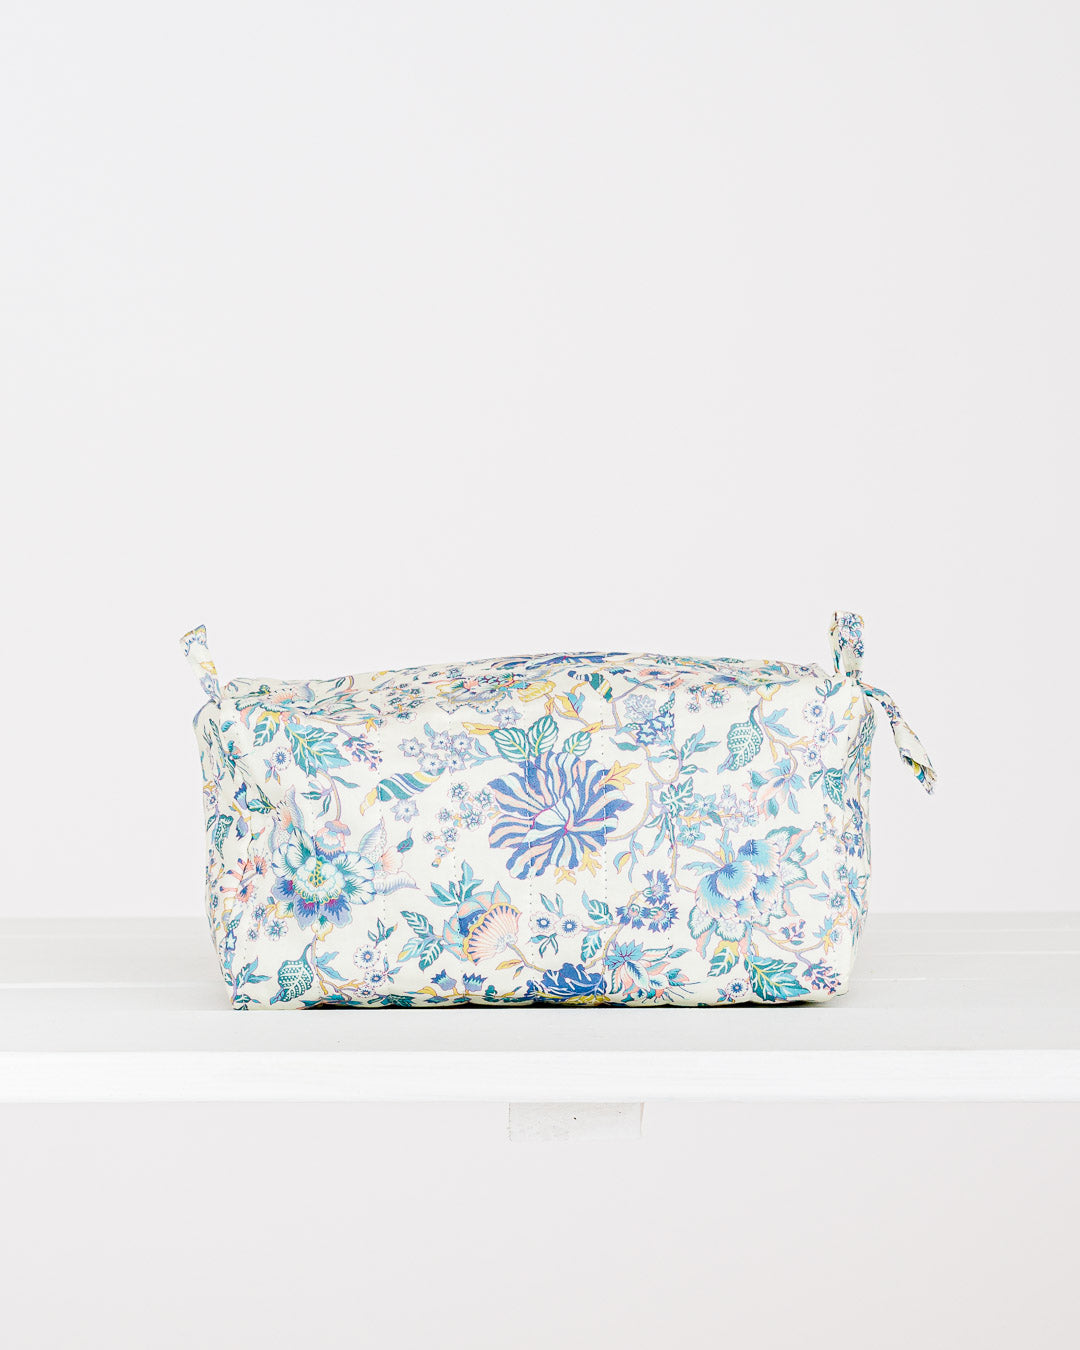 Tine K Home // Liberty Make Up Purse Lavender